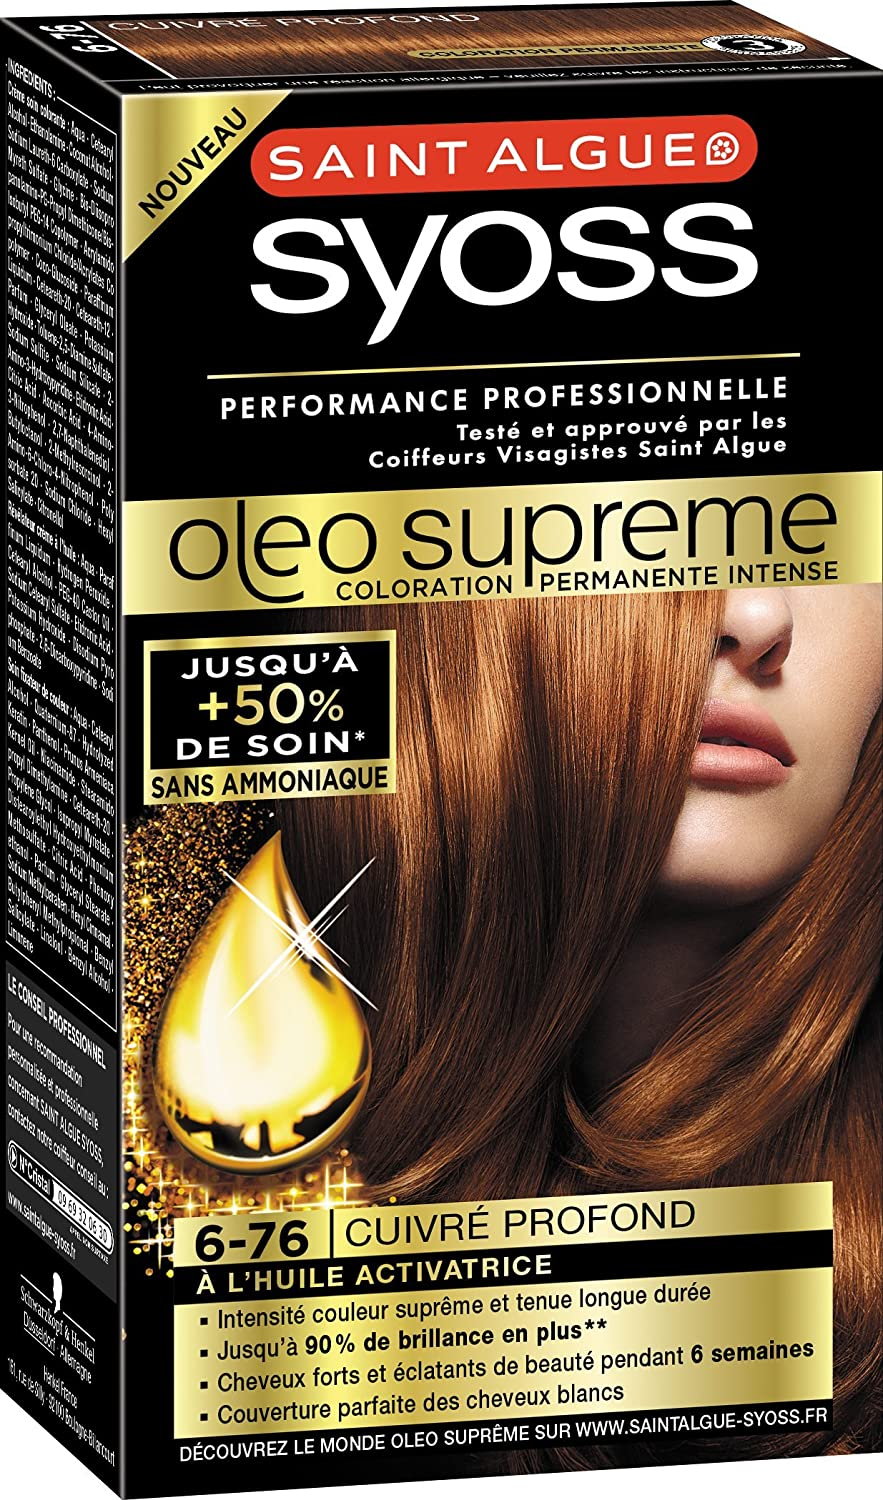 syoss saint algue olo suprme coloration permanente 6 76 cuivr profond - Coloration Mousse Saint Algue